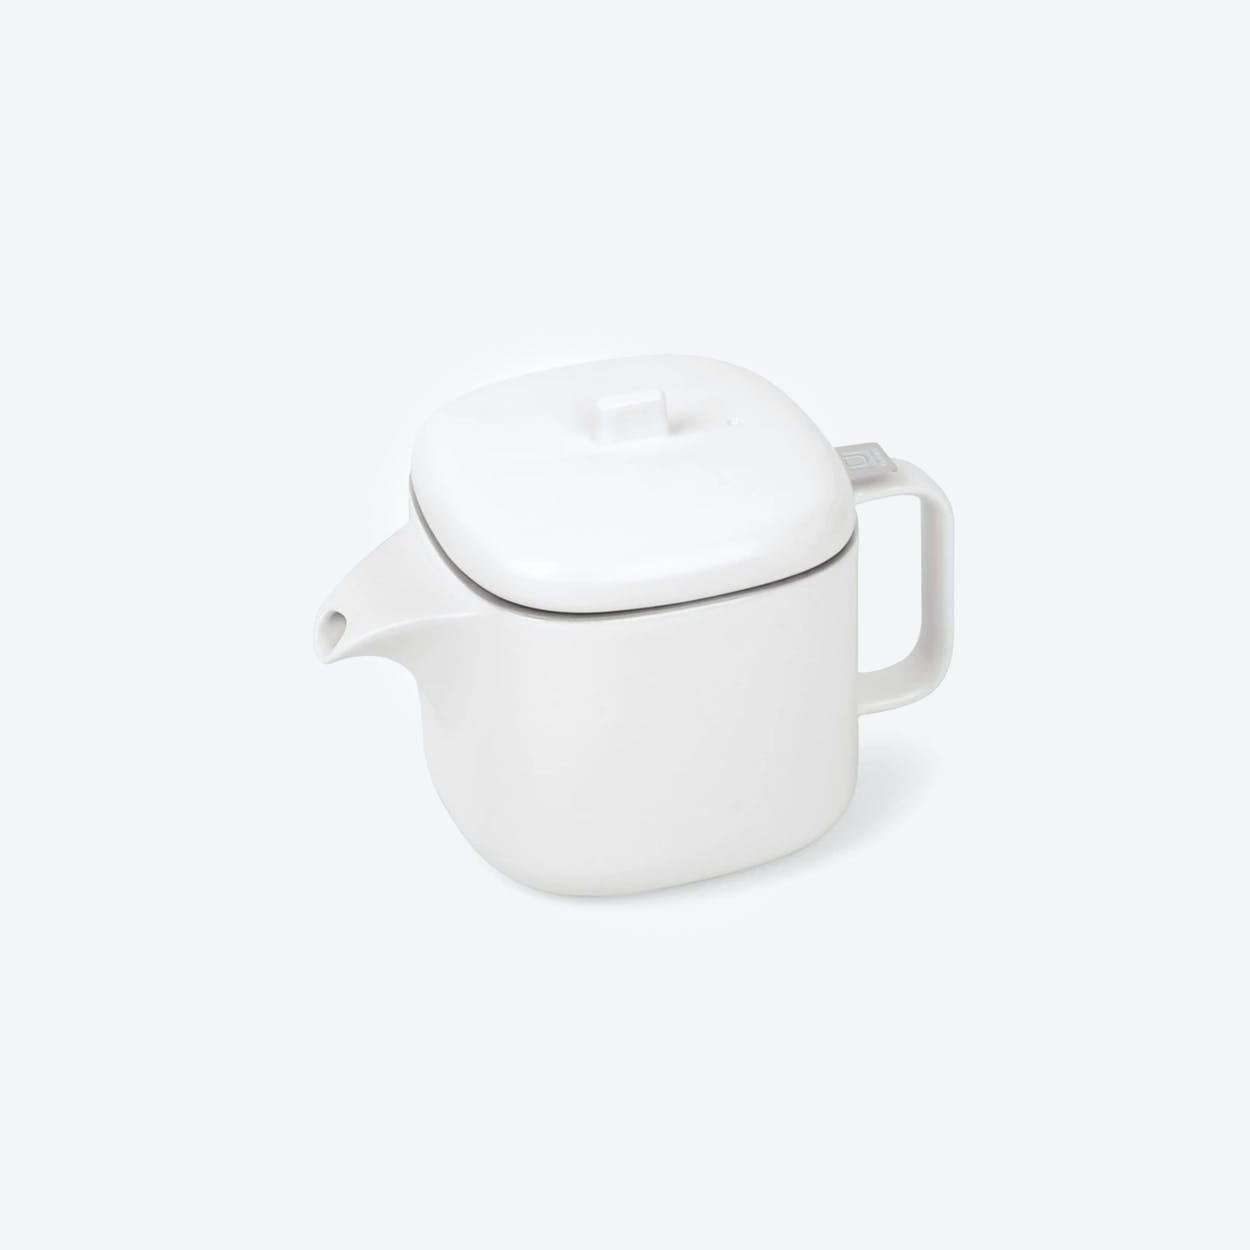 Cutea Teapot with Infuser in White